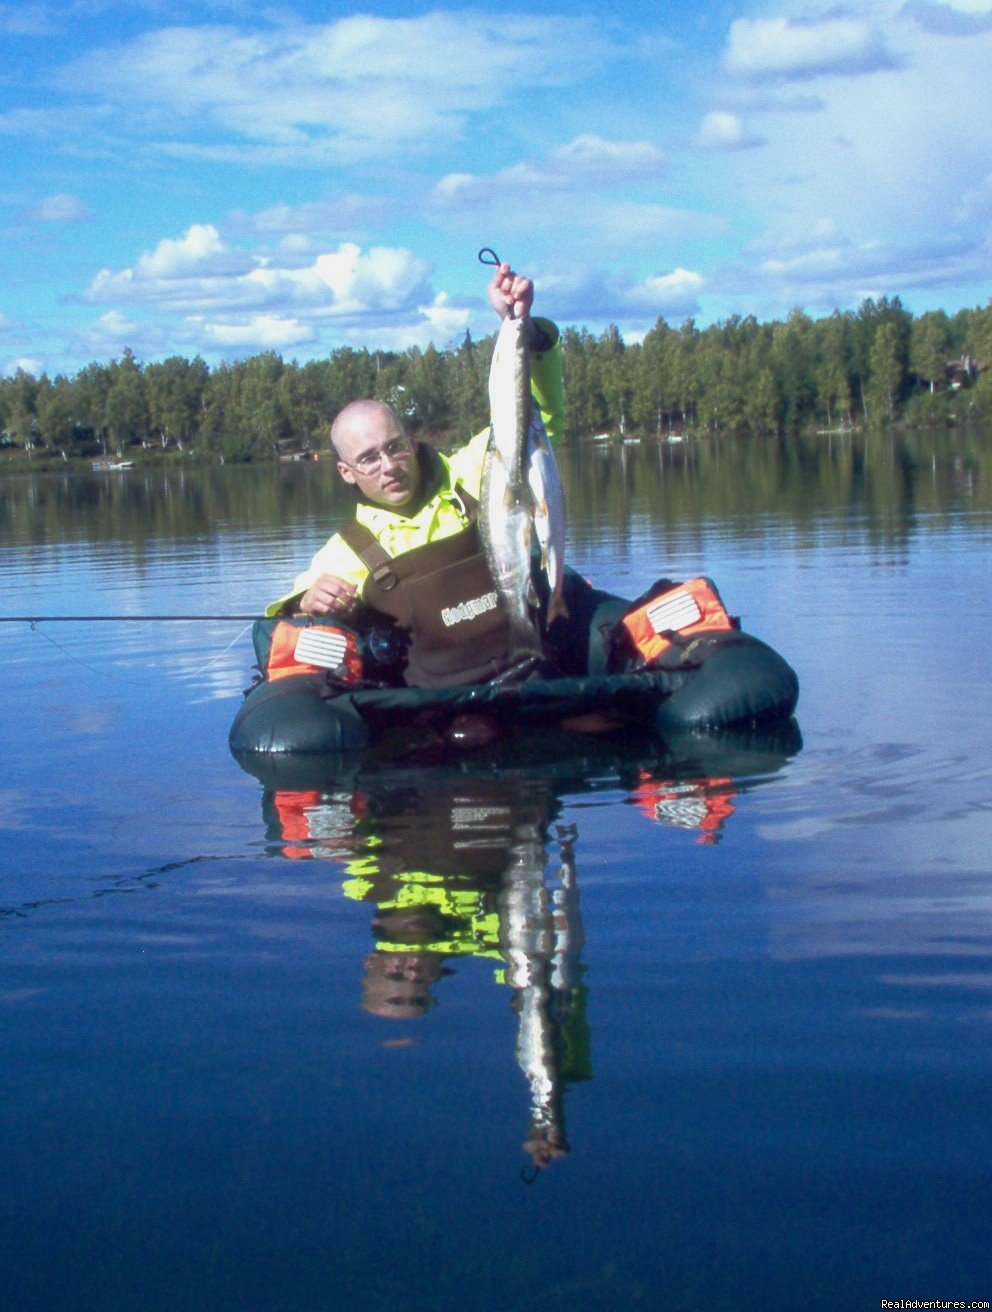 Alaska vacationers experience fly fishing from a float tube in trophy fly fishing waters at bargain prices. Learn Carlyle's methods on fly fishing. My website lists 170 lakes. I  fly fish all of them. Browse them here and when you choose one call me